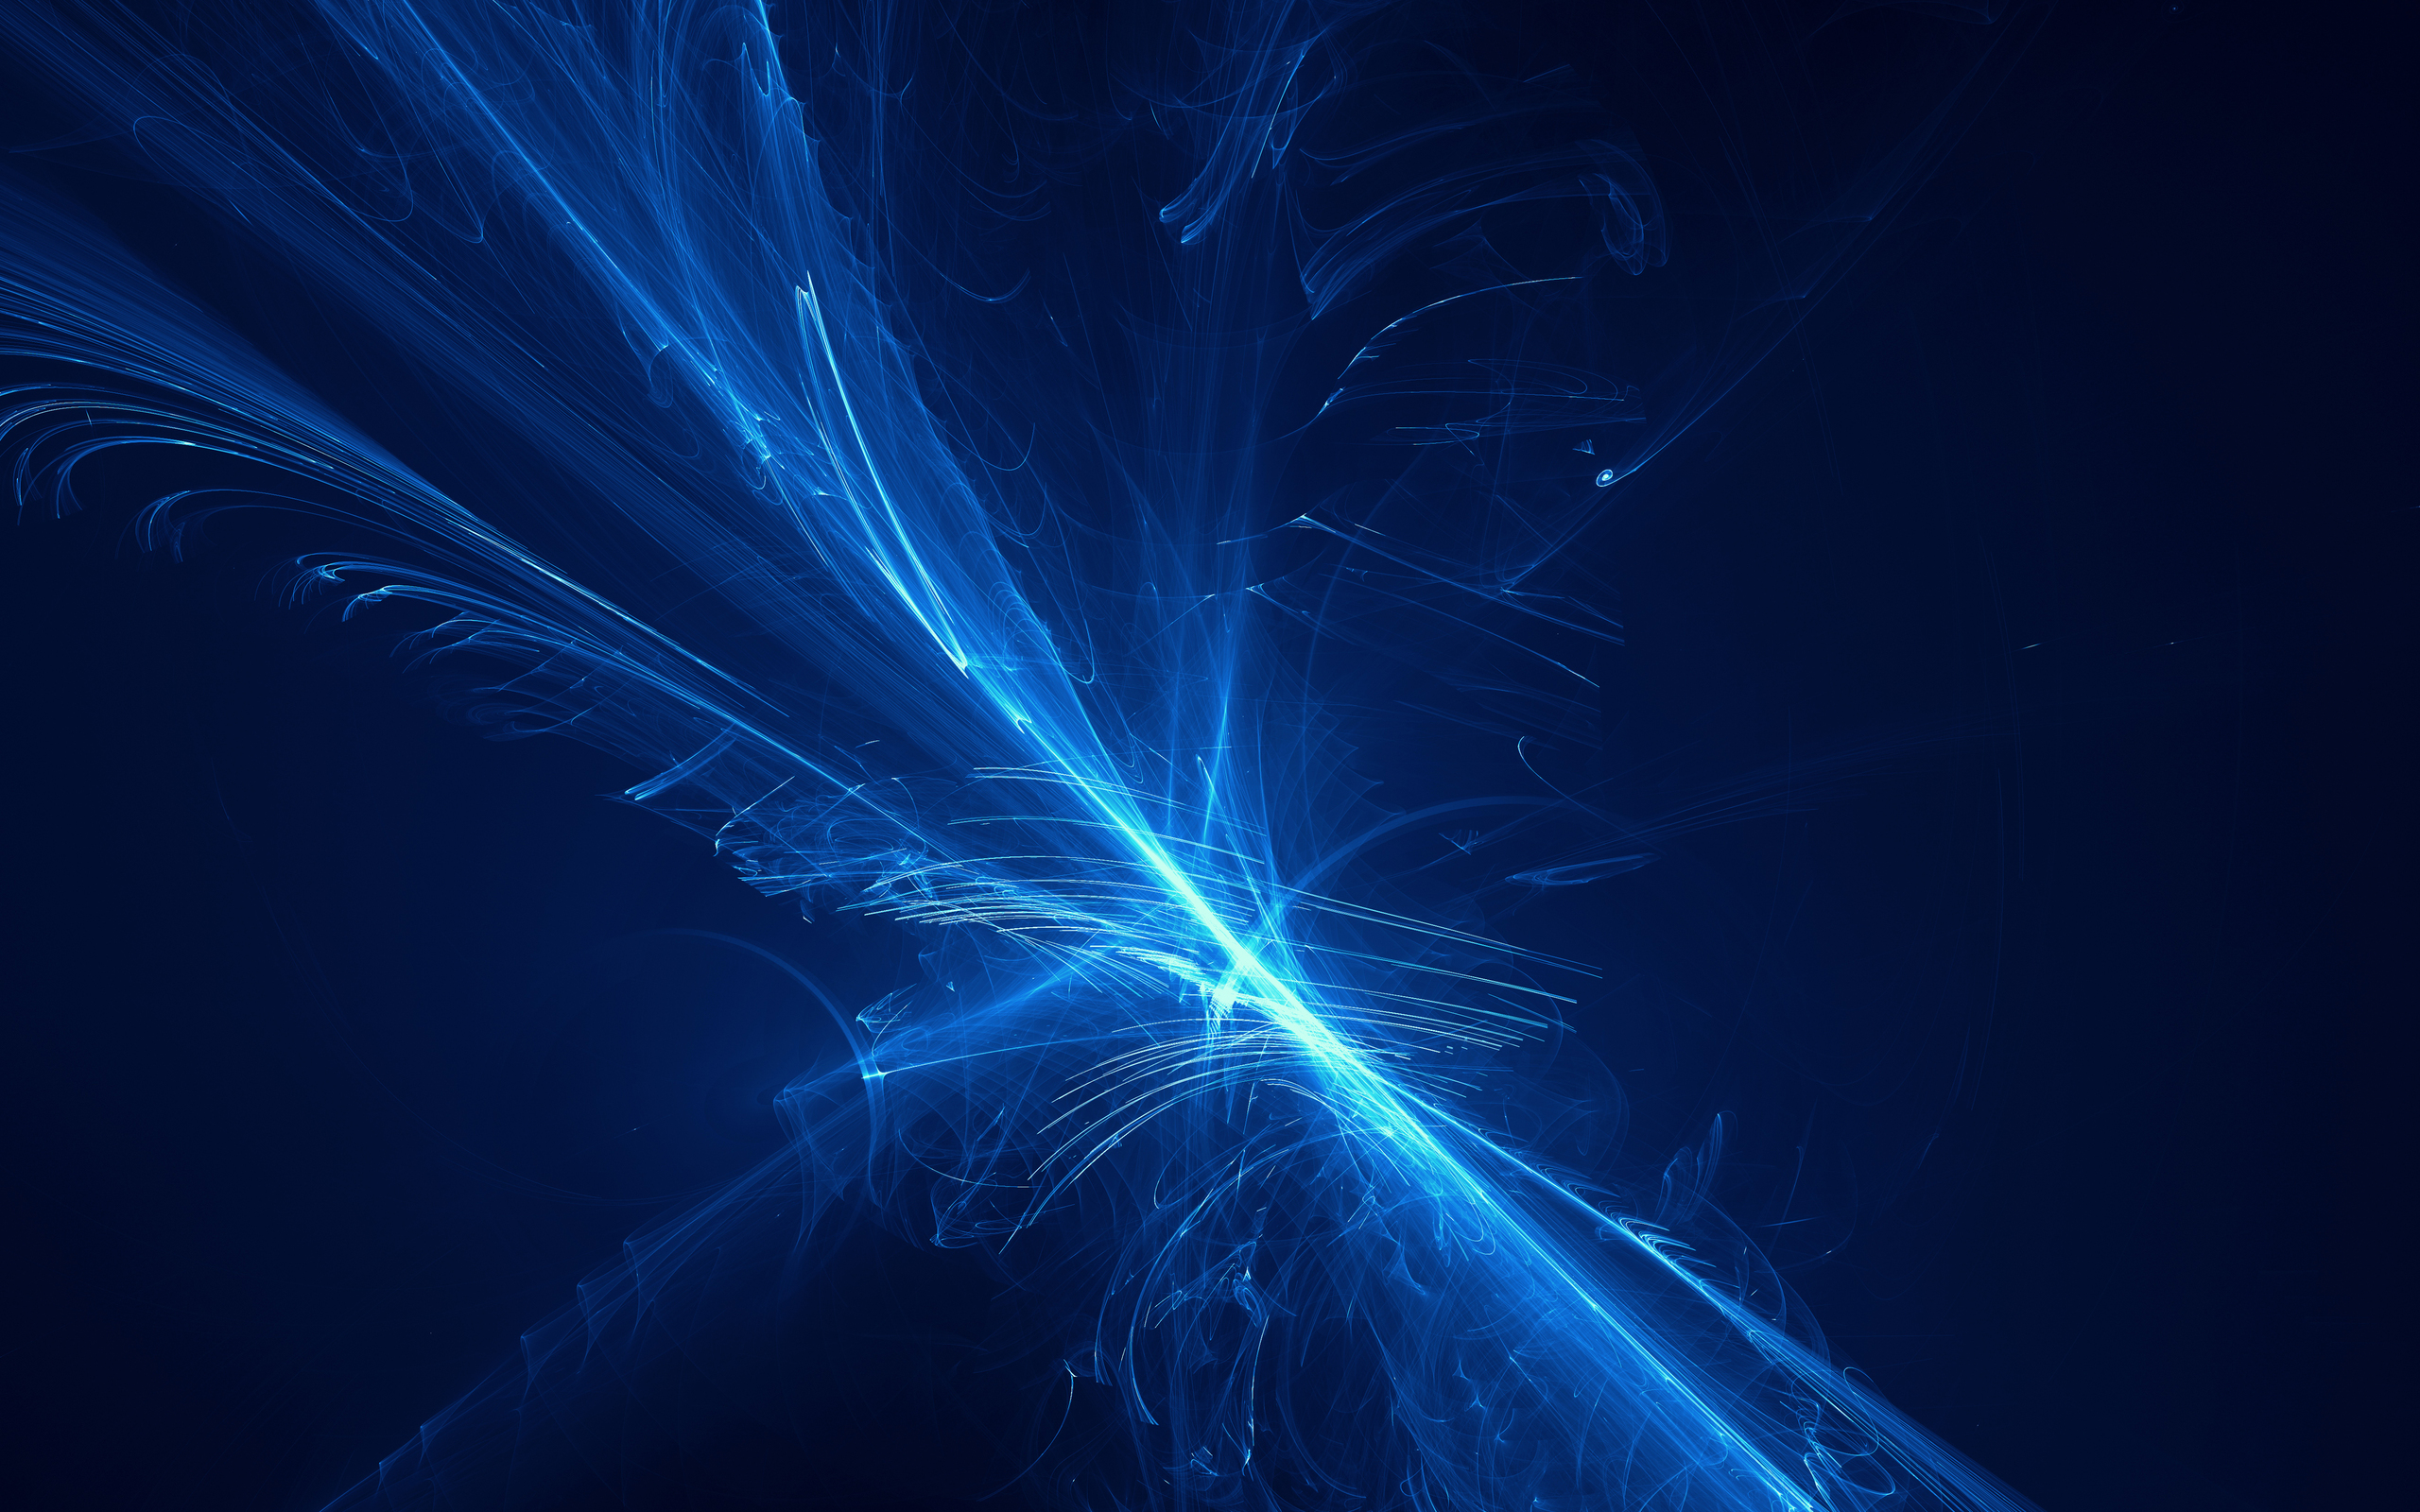 fractal-blue-abstract-3d-5k-36.jpg